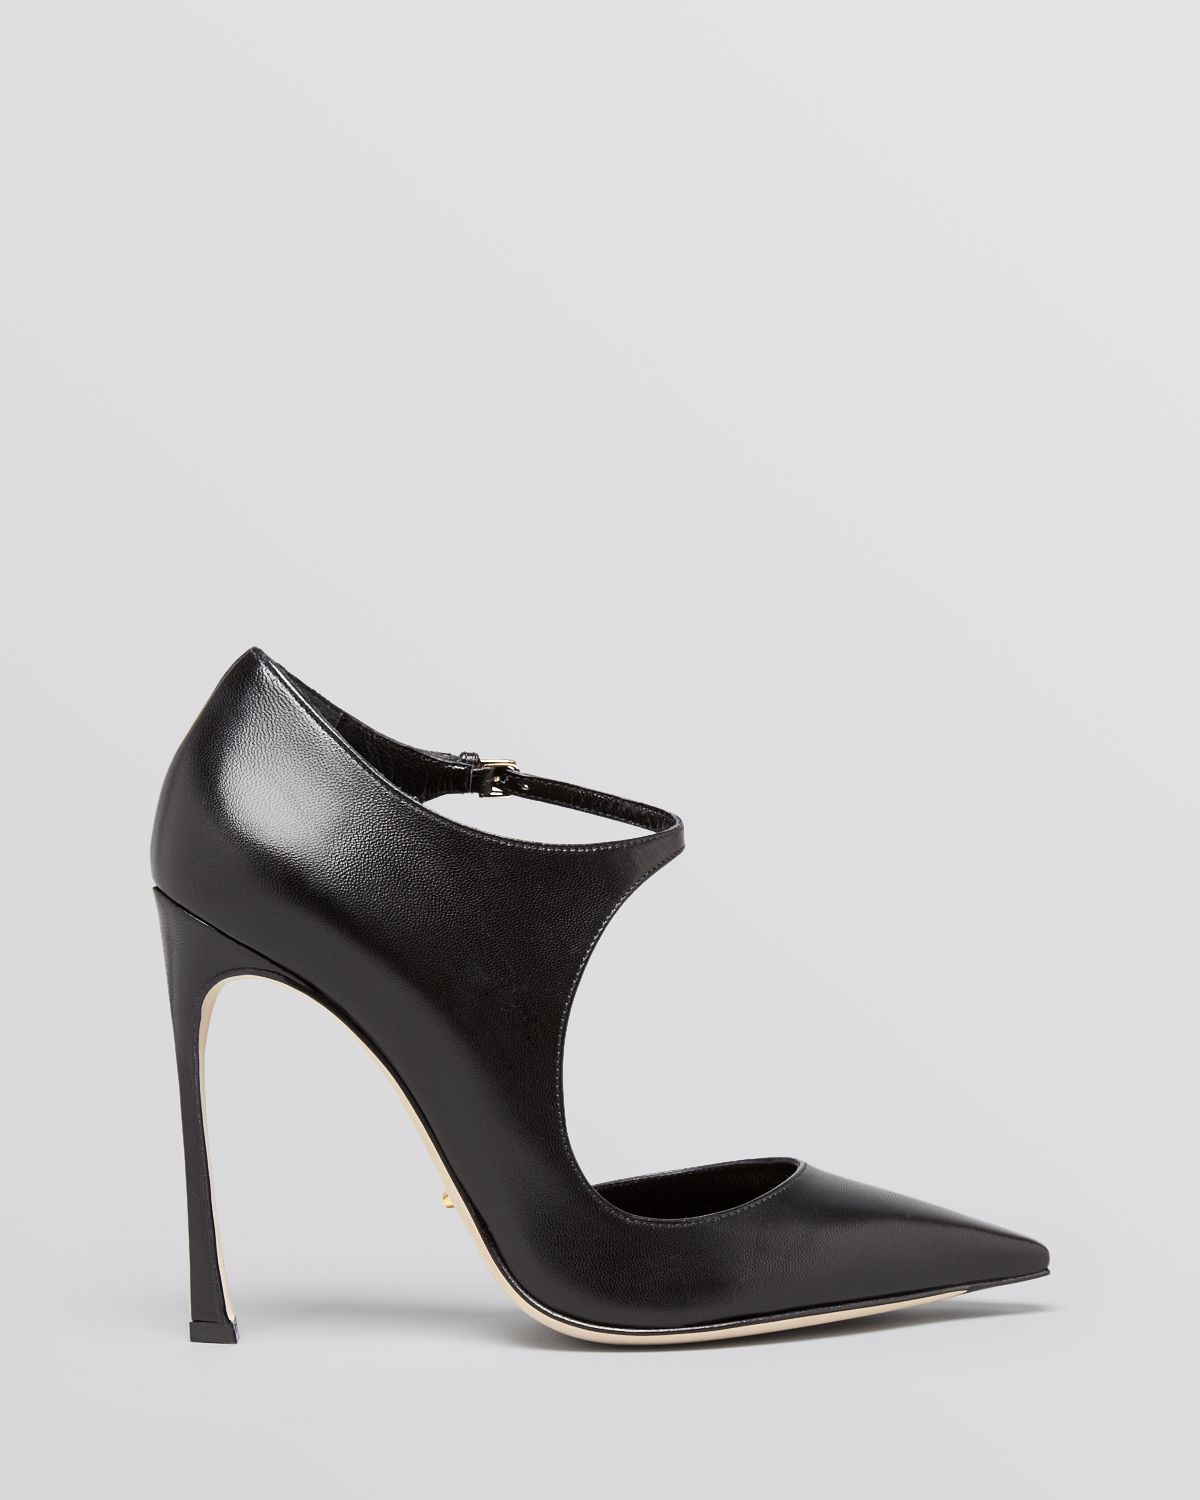 Lyst - Sergio Rossi Pointed Toe Ankle Strap Pumps - Sherazade Mary ...